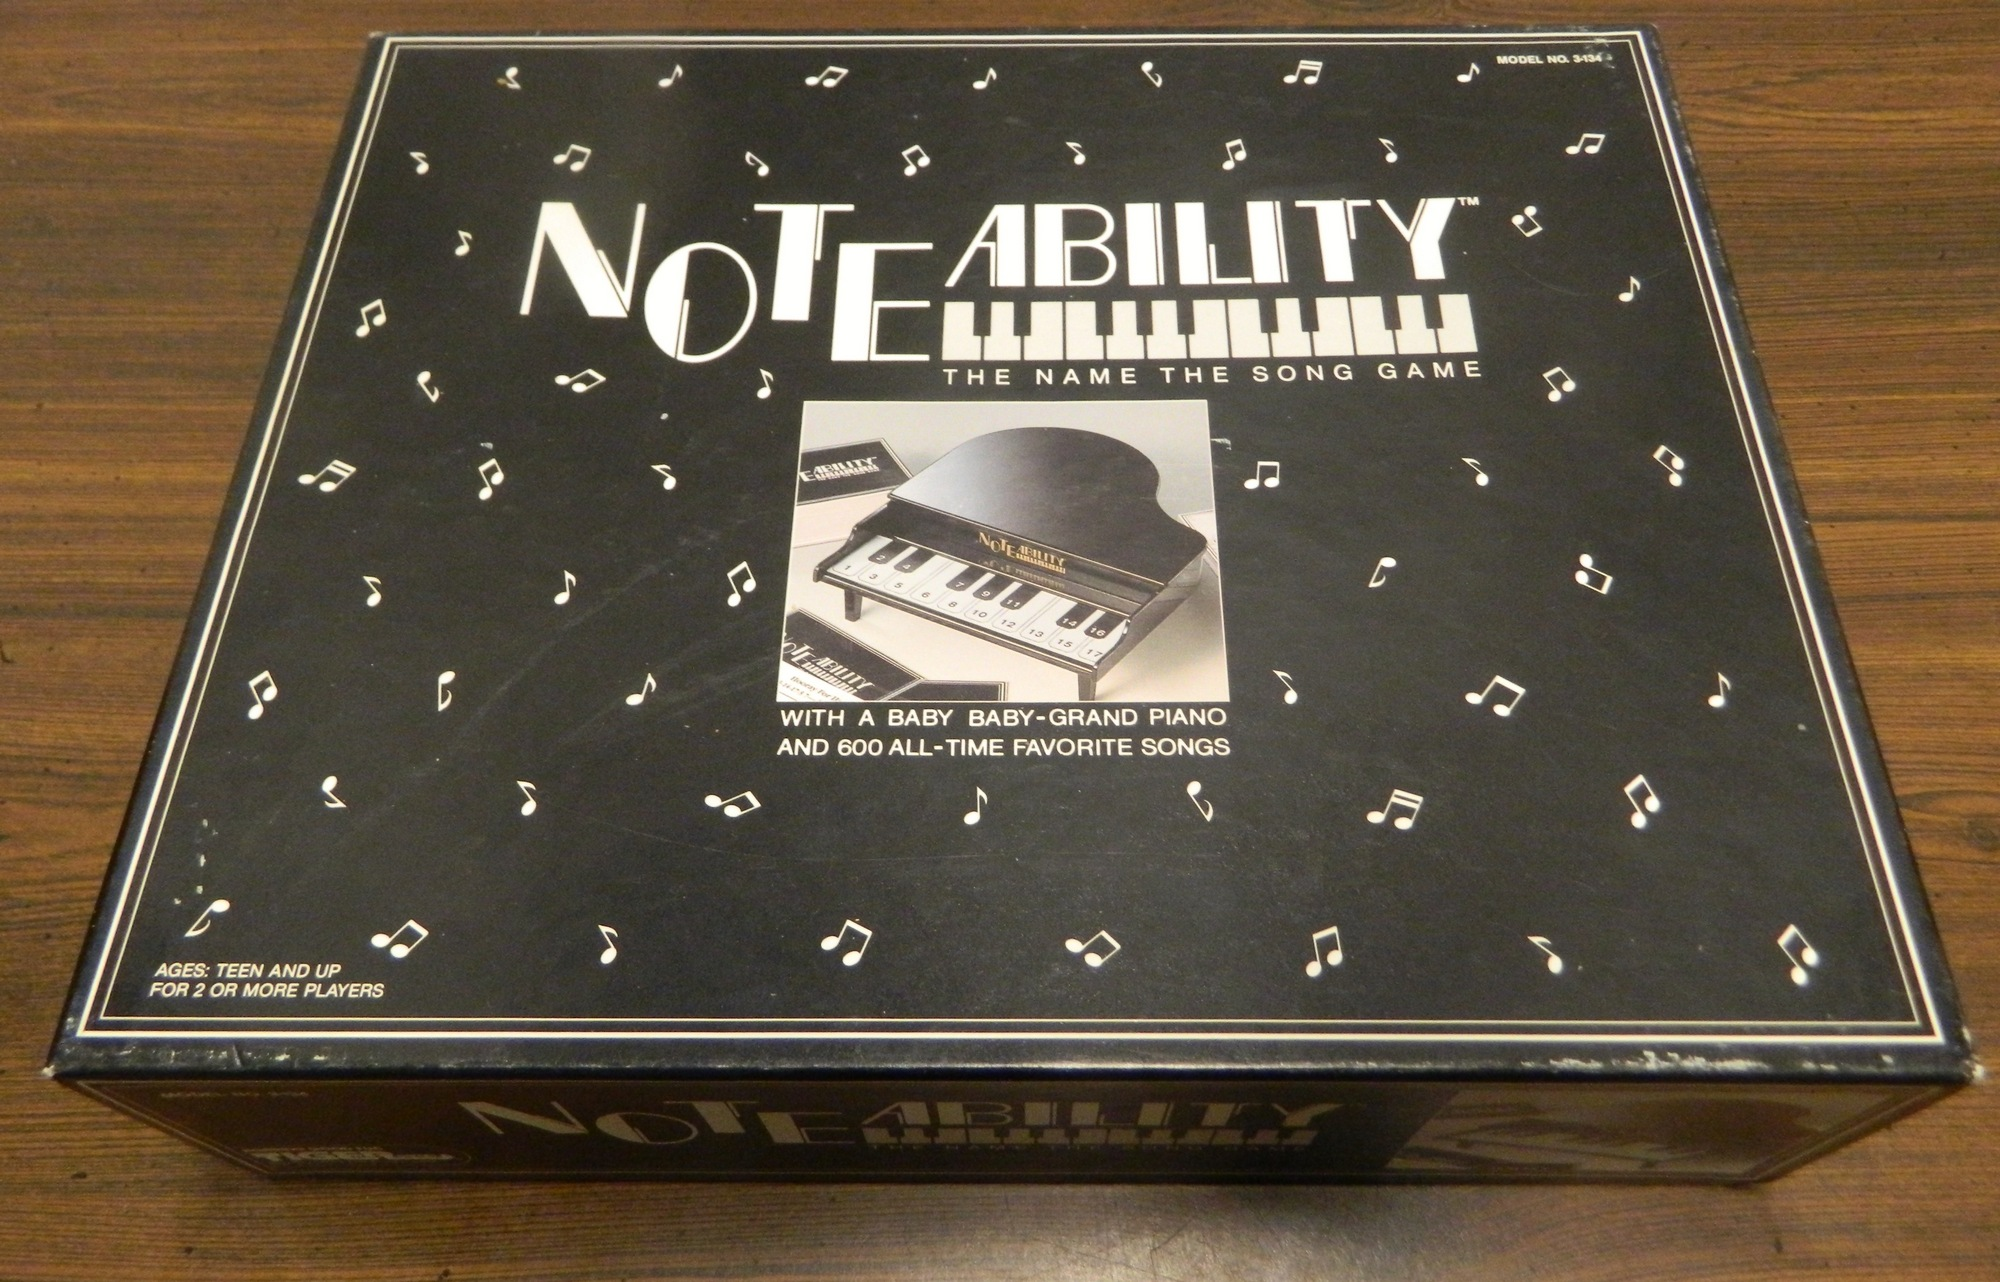 Box for Noteability